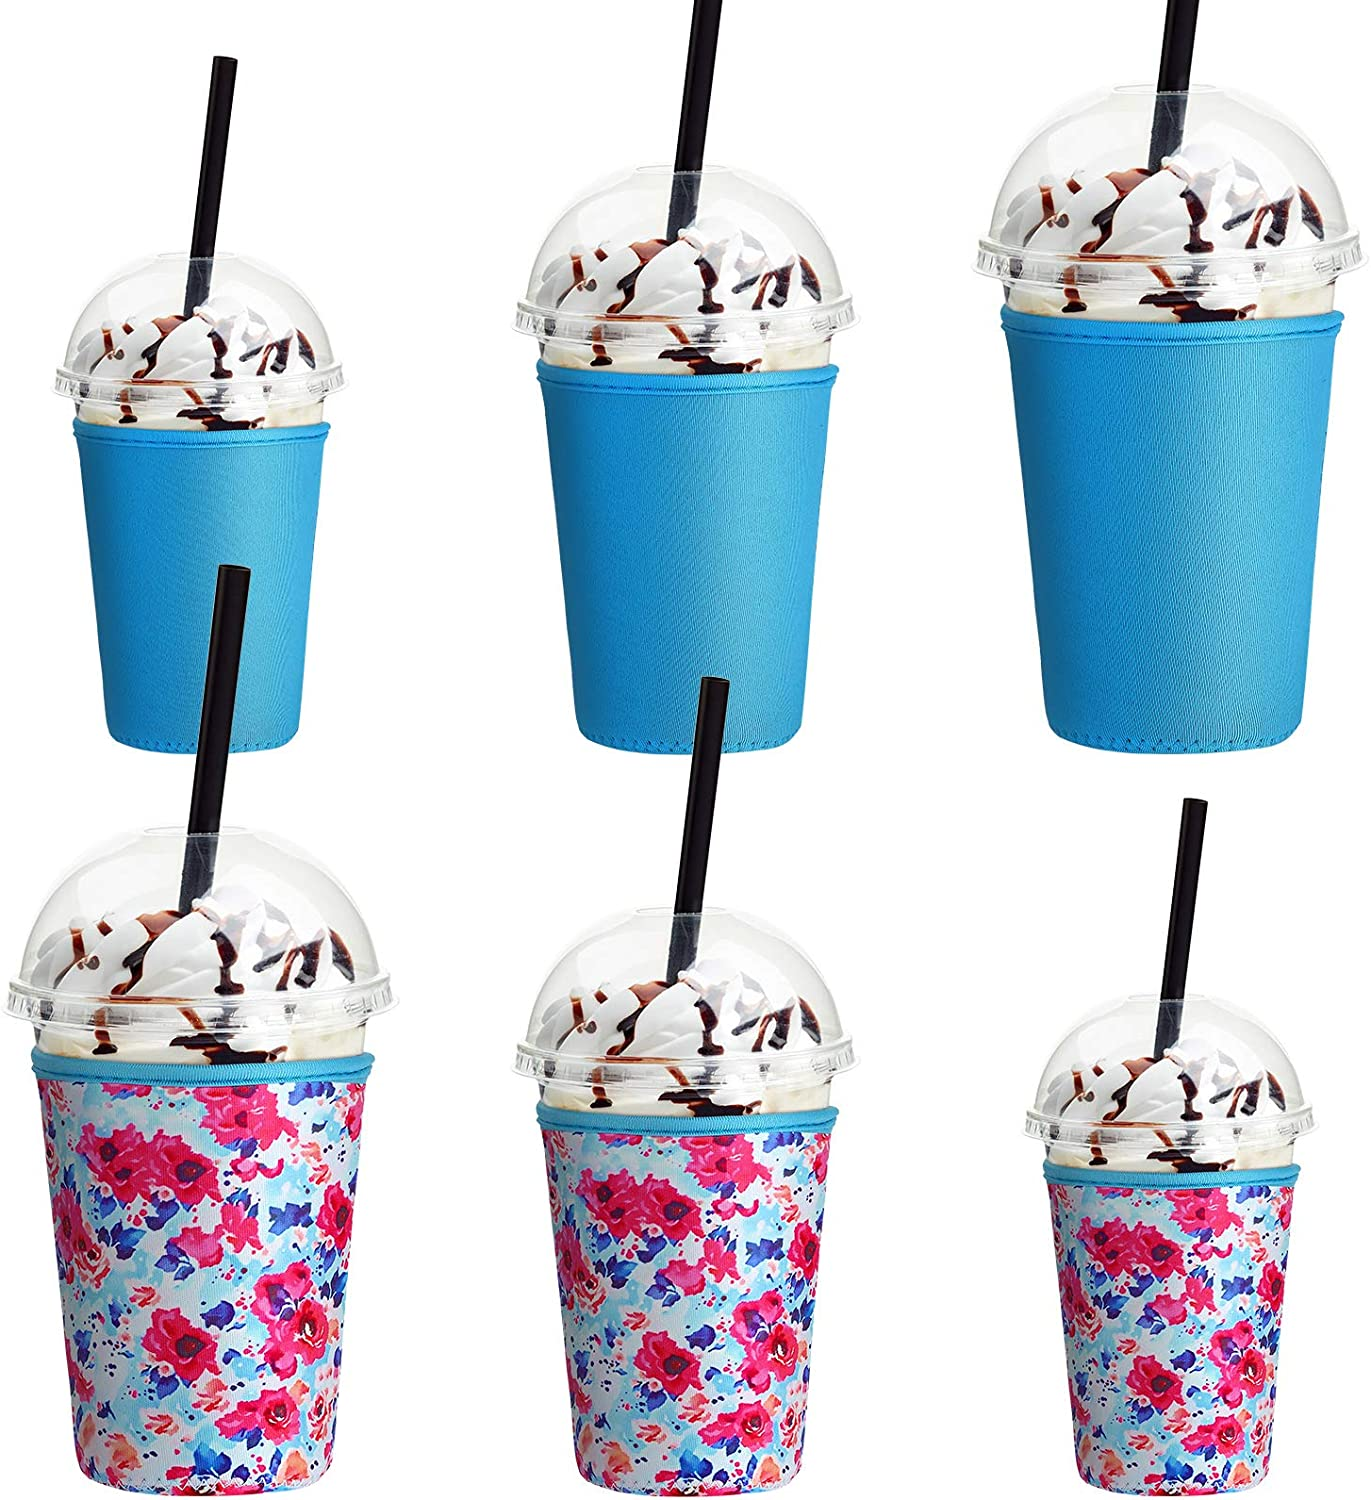 6 Pieces Reusable Ice Coffee Cup Sleeve 3 Sizes Insulator Drinks Cup Sleeves Insulated Neoprene Cup Holder for 16 to 32 oz Cold Hot Drink Coffee Tea Beverages Cup Bottle (Blue and Flower Patterns)